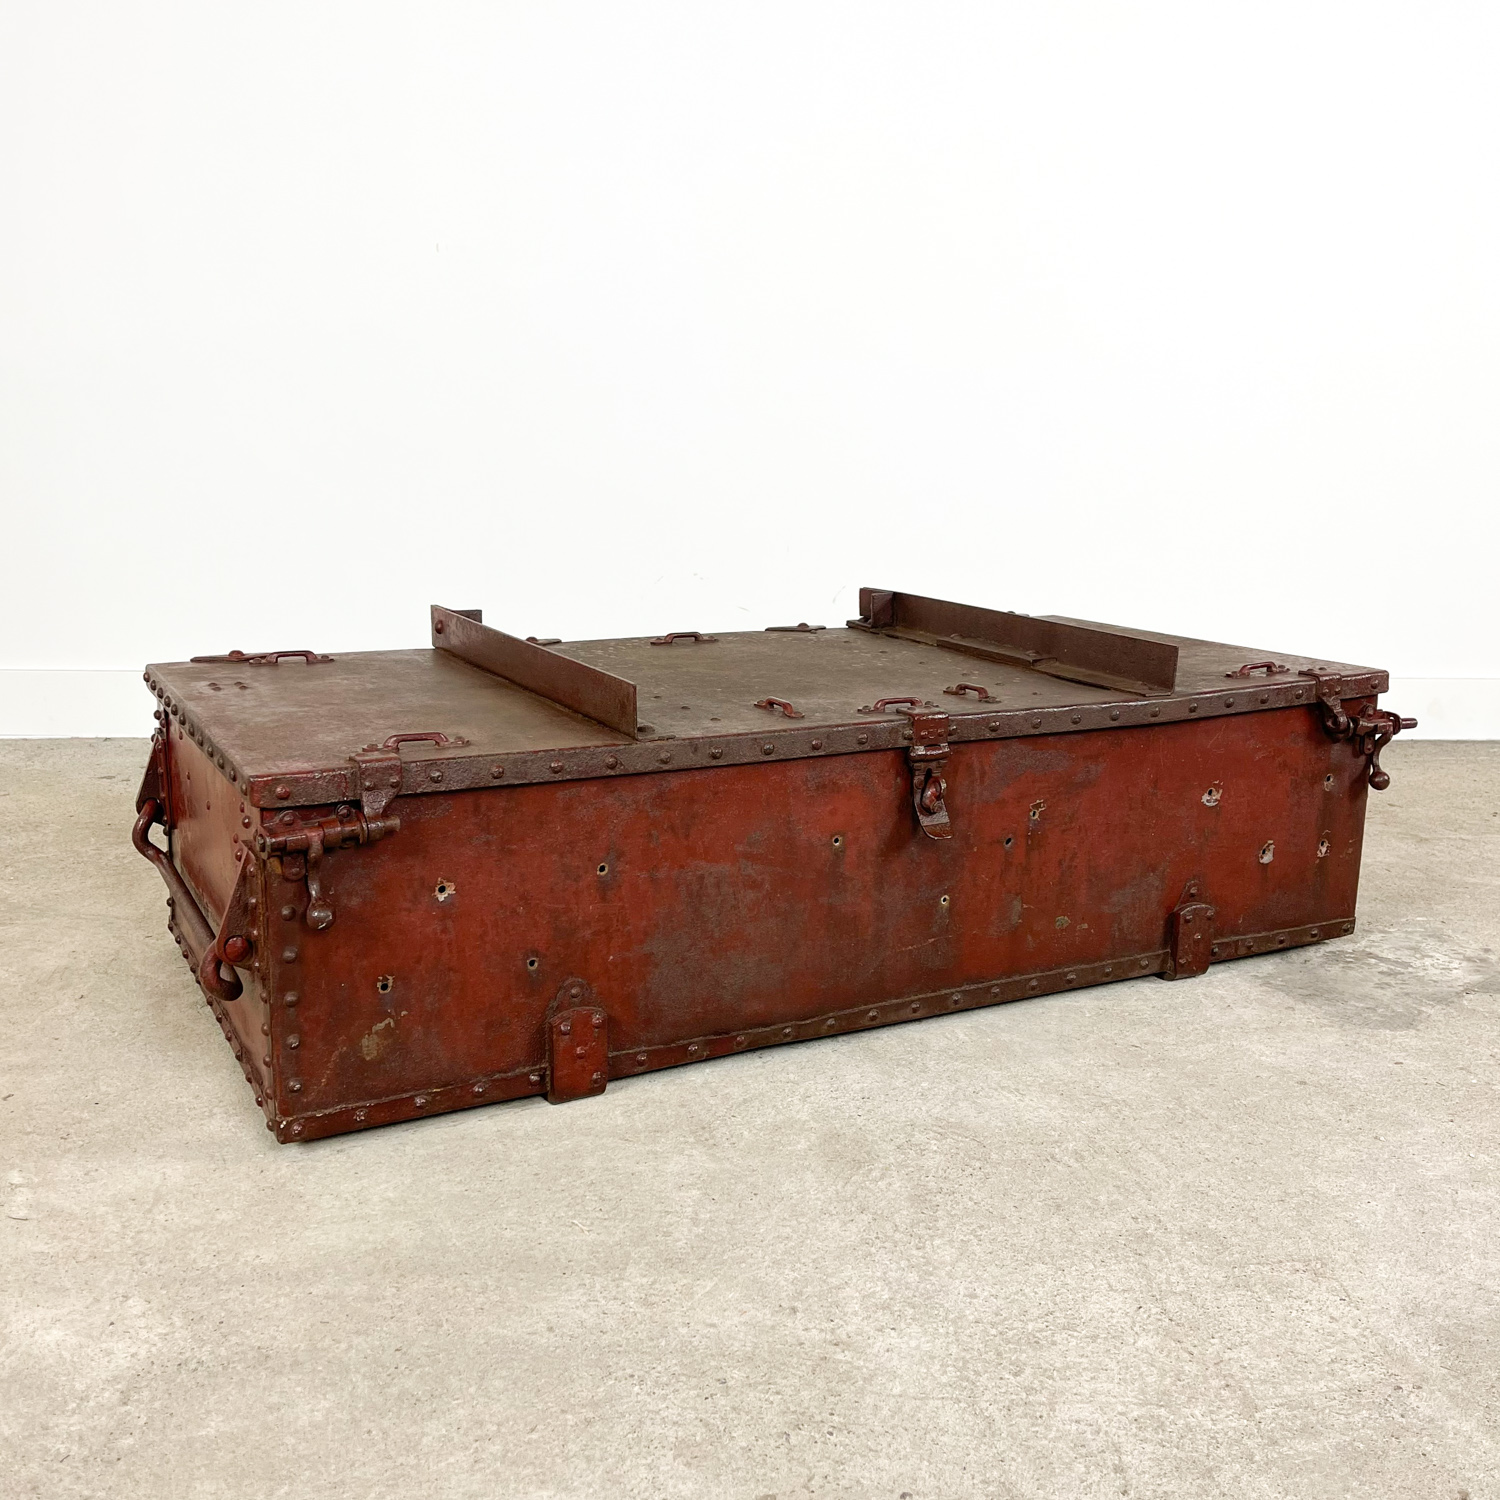 Vintage industrial red metal trunk French Fire fighters